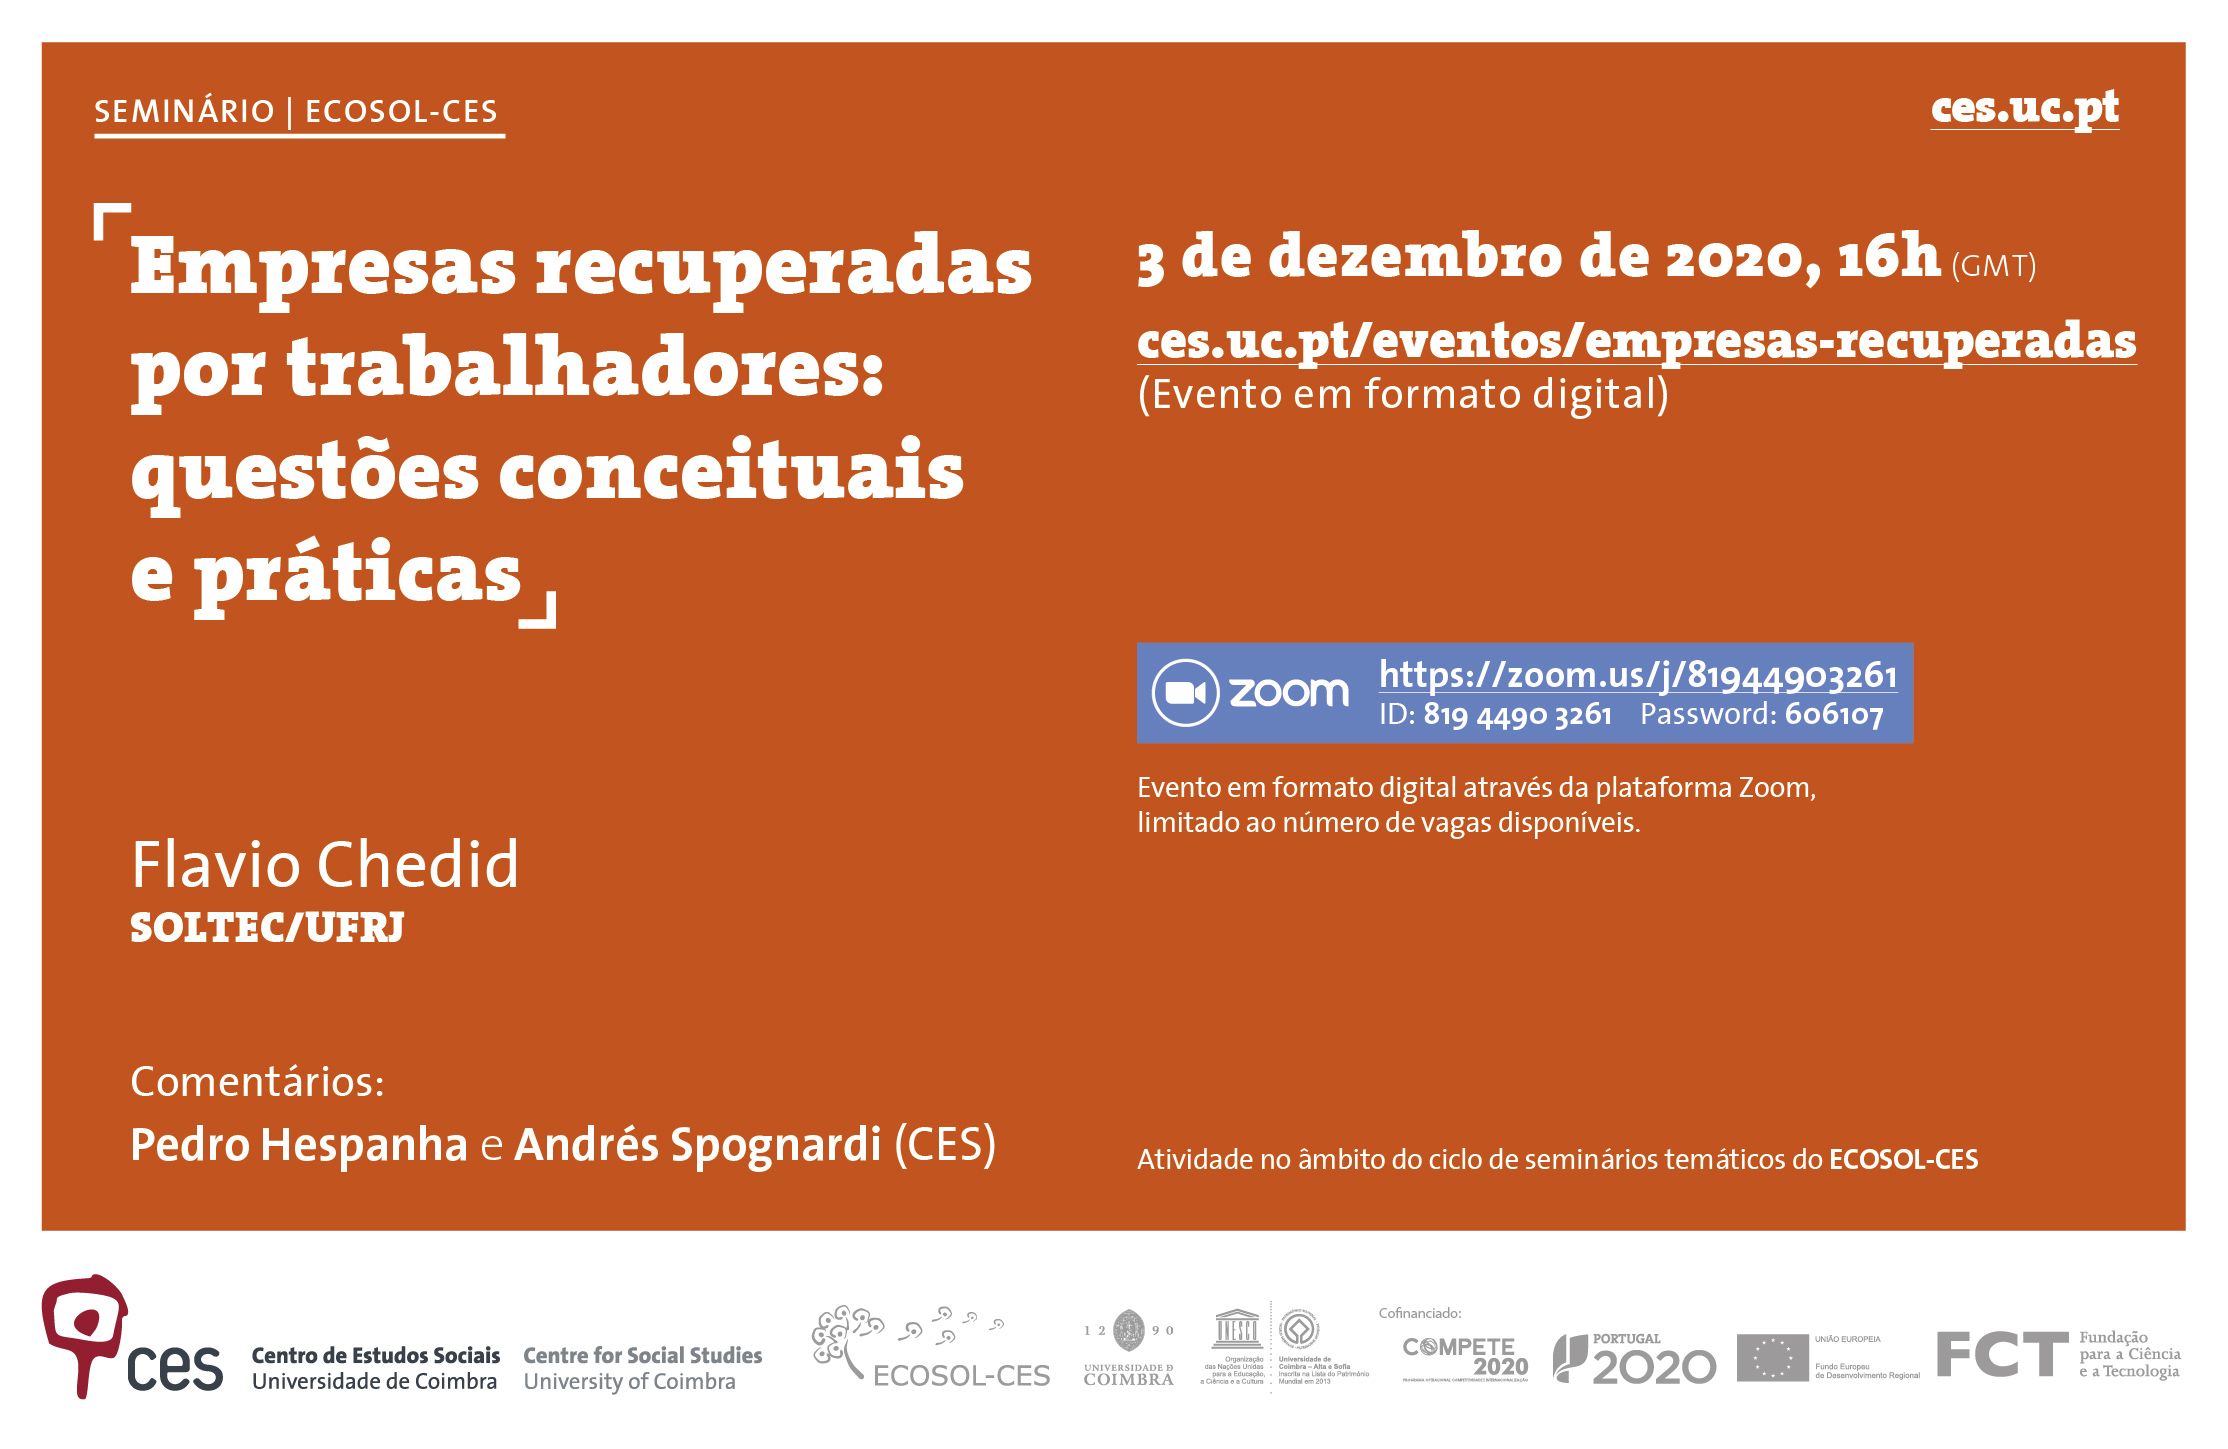 "Companies recovered by workers: conceptual and practical issues<span id=""edit_31474""><script>$(function() { $('#edit_31474').load( ""/myces/user/editobj.php?tipo=evento&id=31474"" ); });</script></span>"